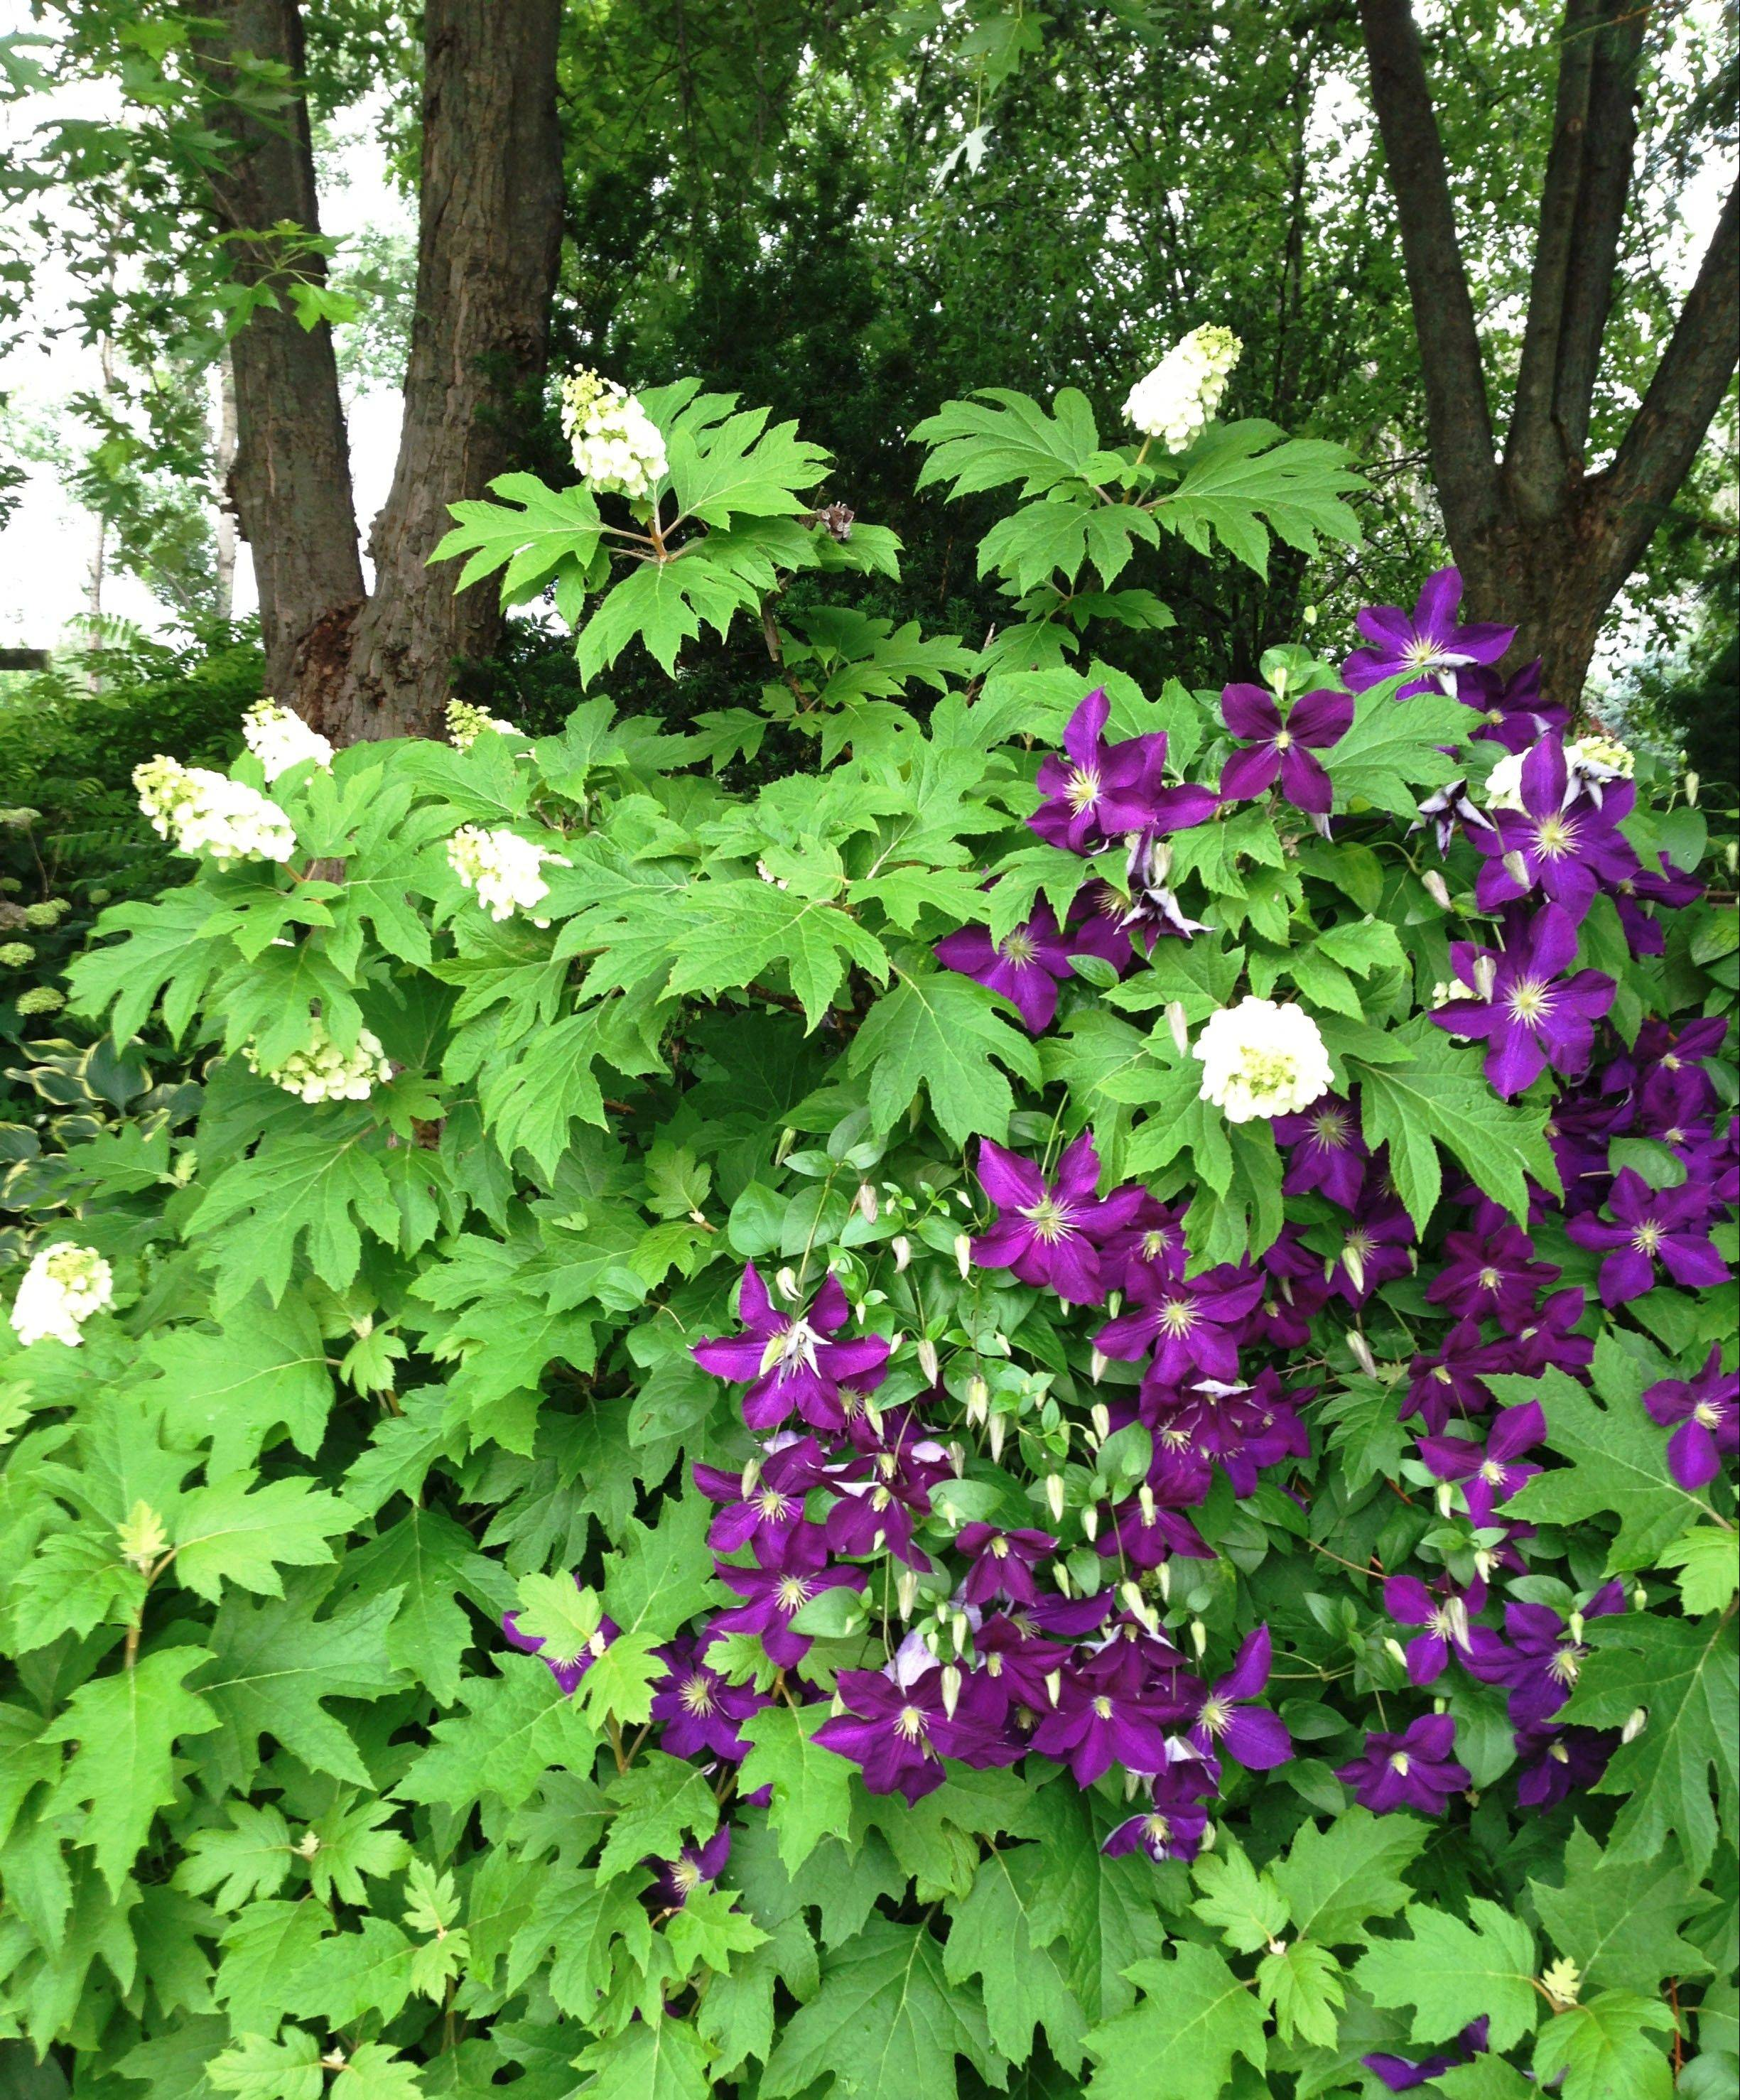 A clematis climbs the stems of an oakleaf hydrangea and puts on quite a show.